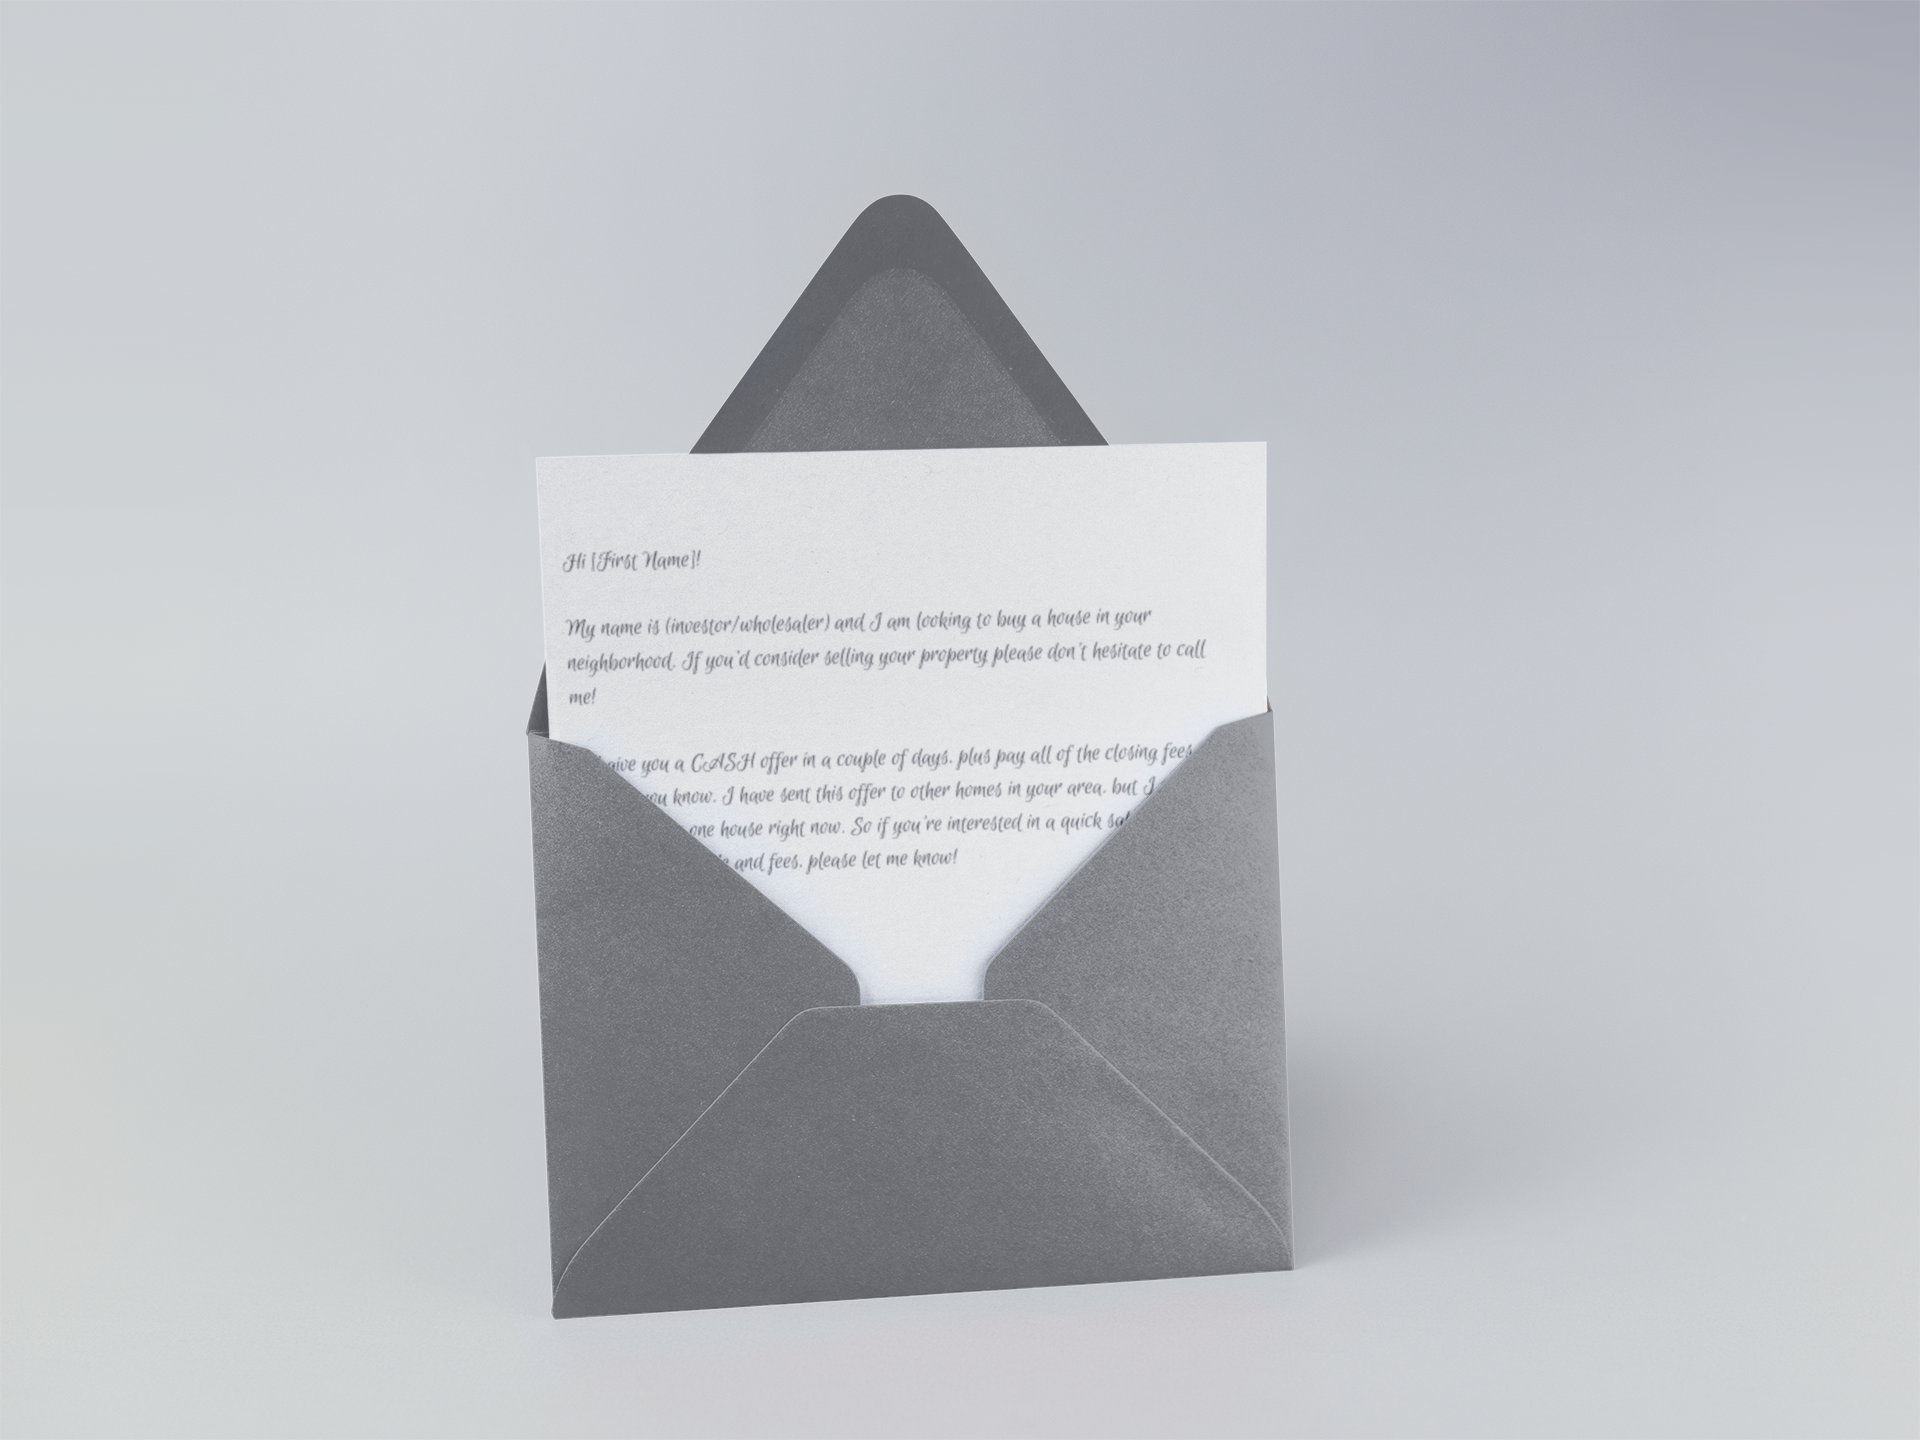 invitation-card-in-an-envelope-template-standing-on-a-solid-surface-a15086 (3).png